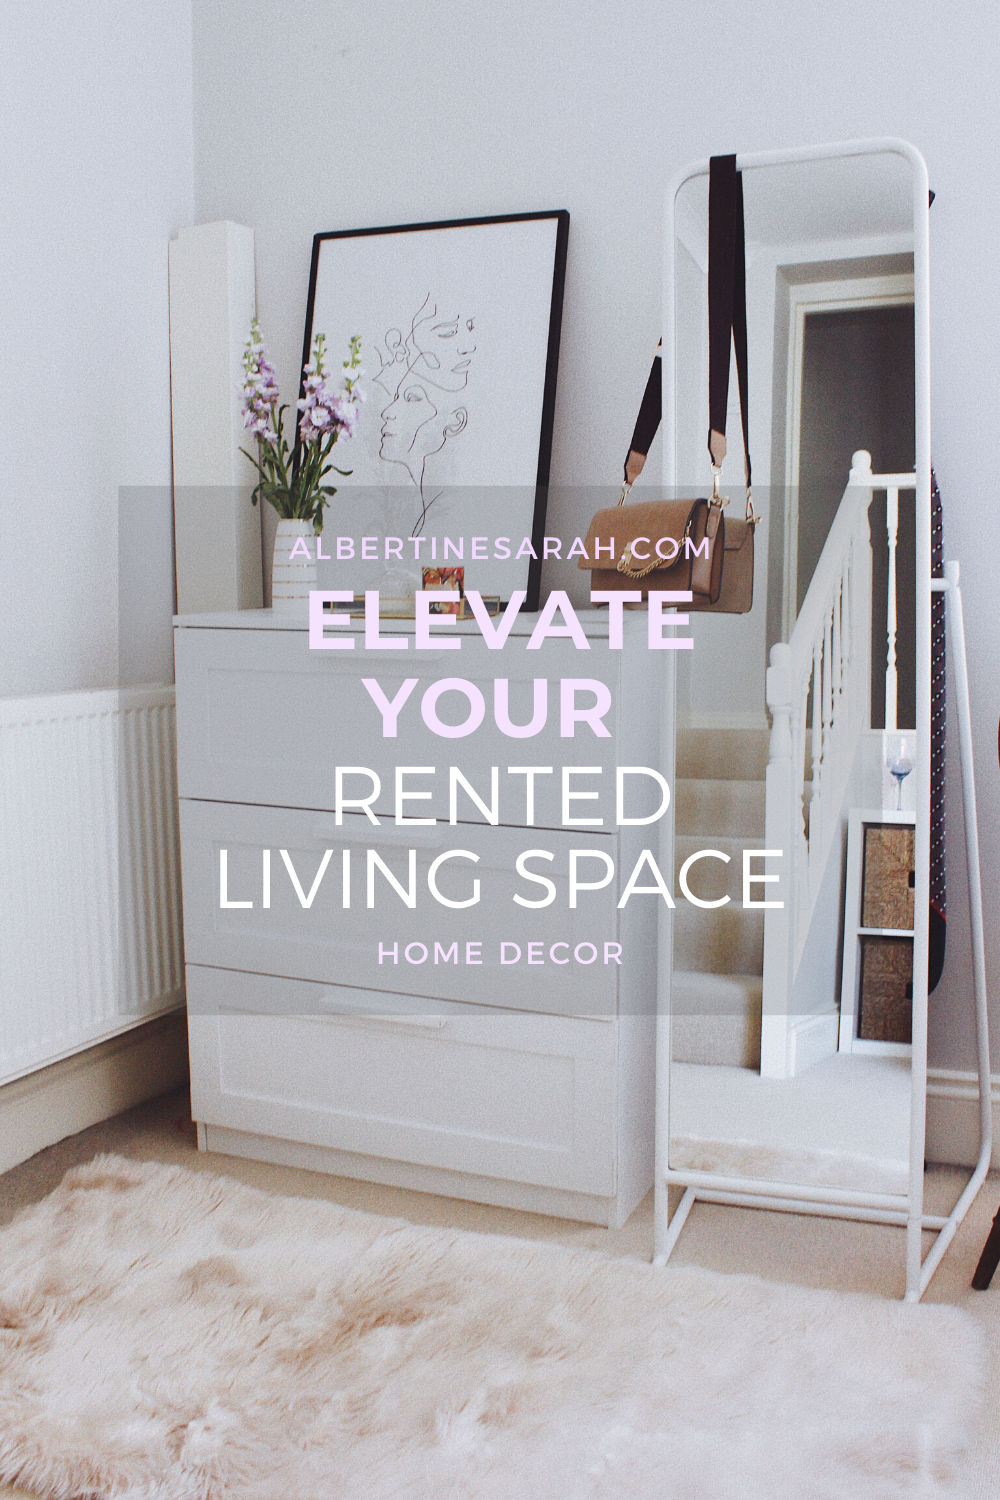 Elevate your rented living space Pinterest graphic